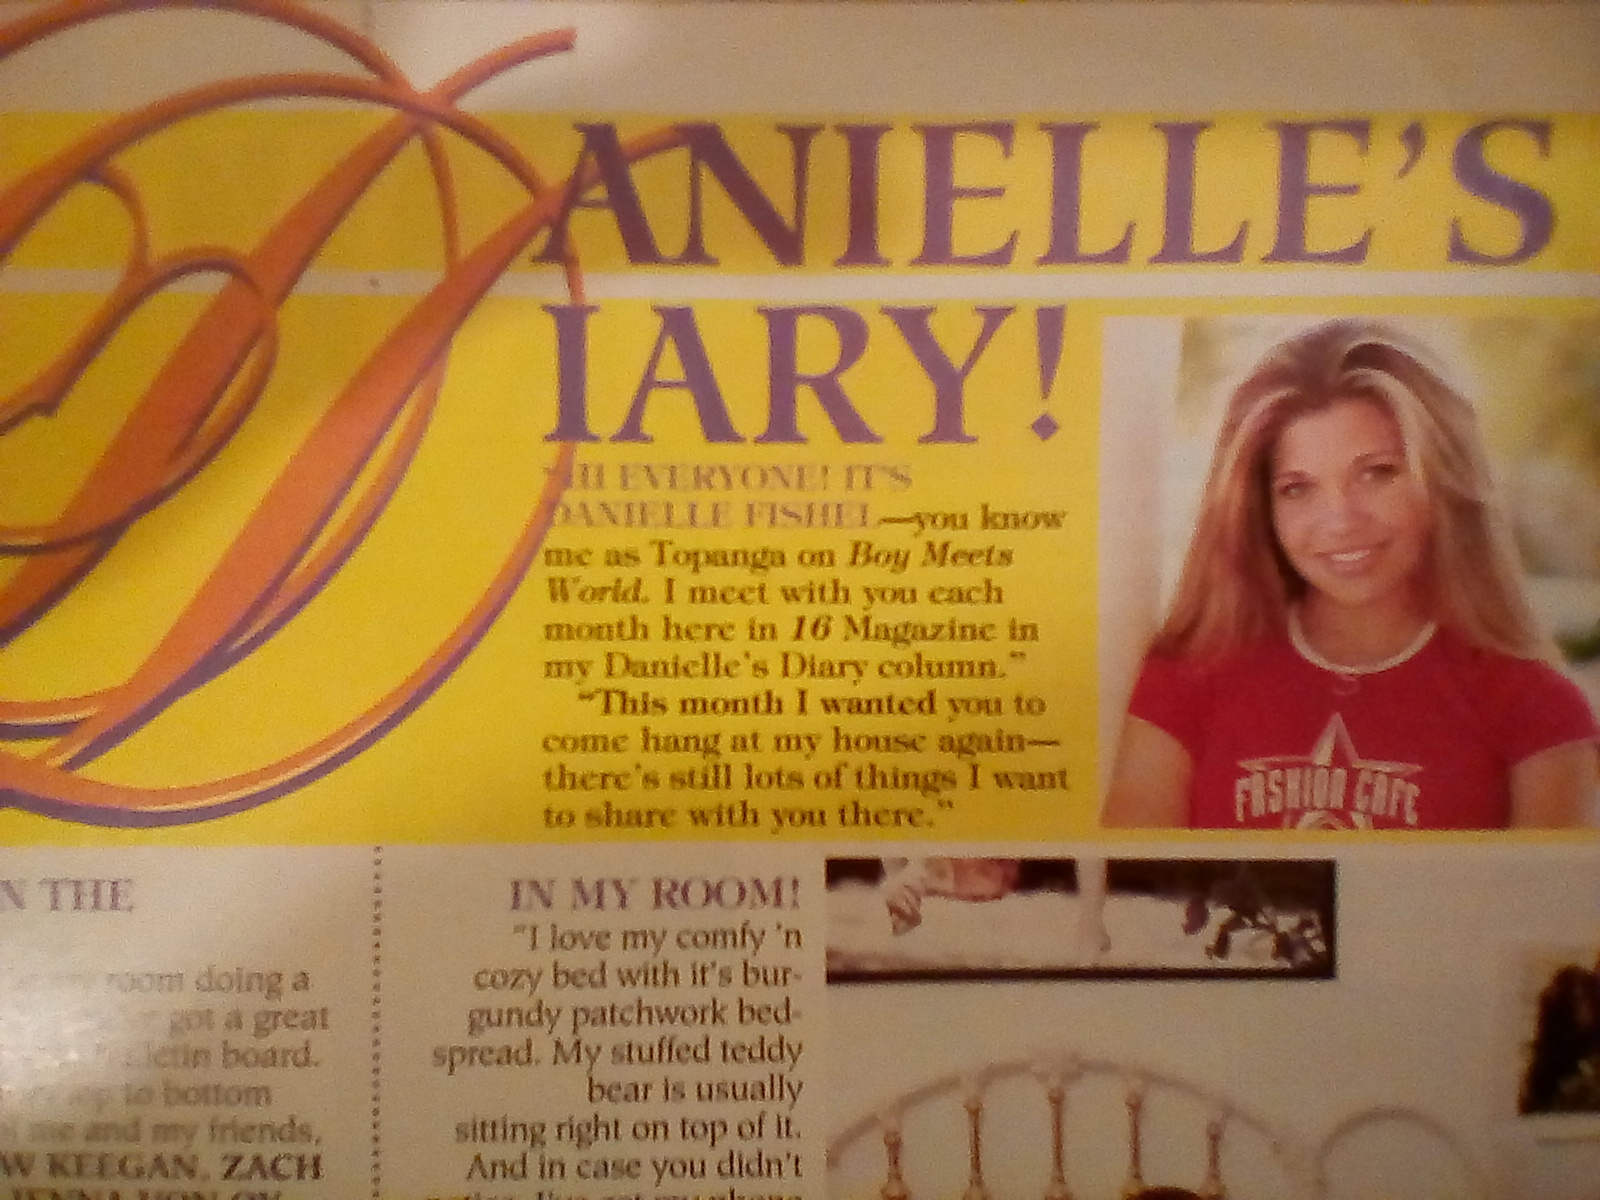 IMG 20180502 005703 Who Wants To Read Danielle Fishel's Diary?